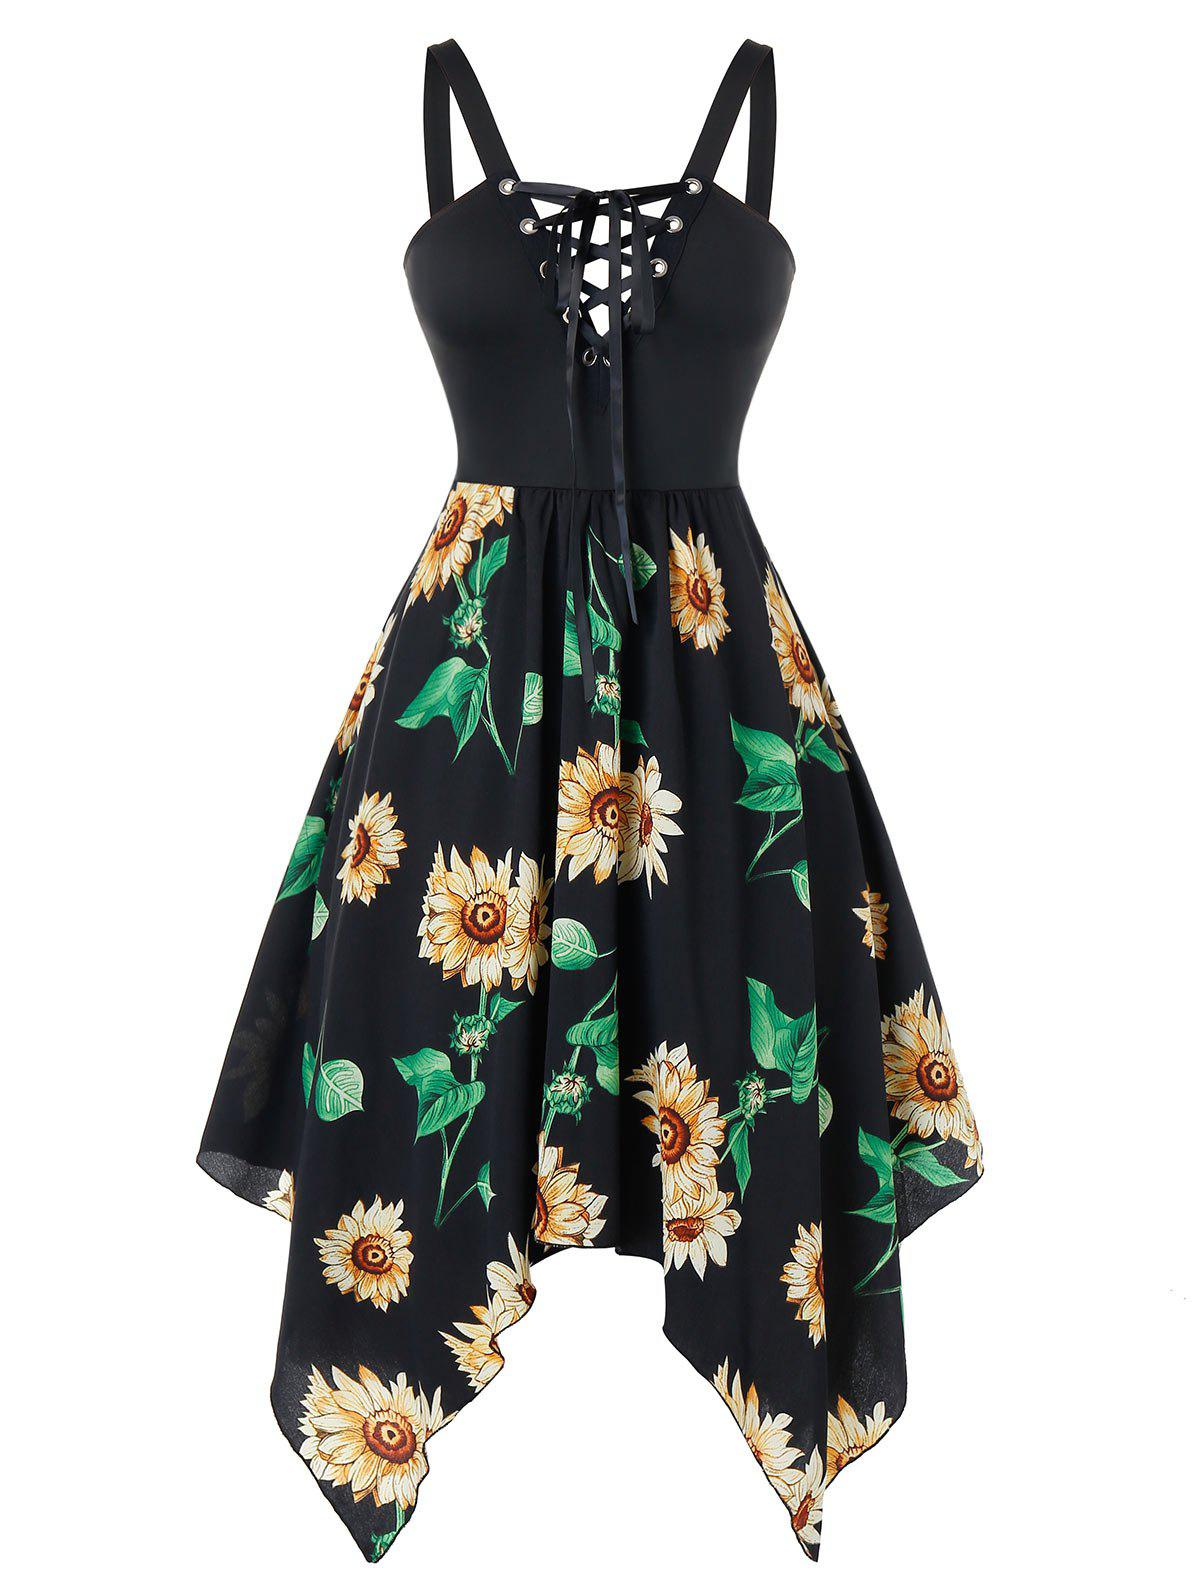 Plus Size Asymmetric Handkerchief Sunflower Lace Up Dress - BLACK 3X